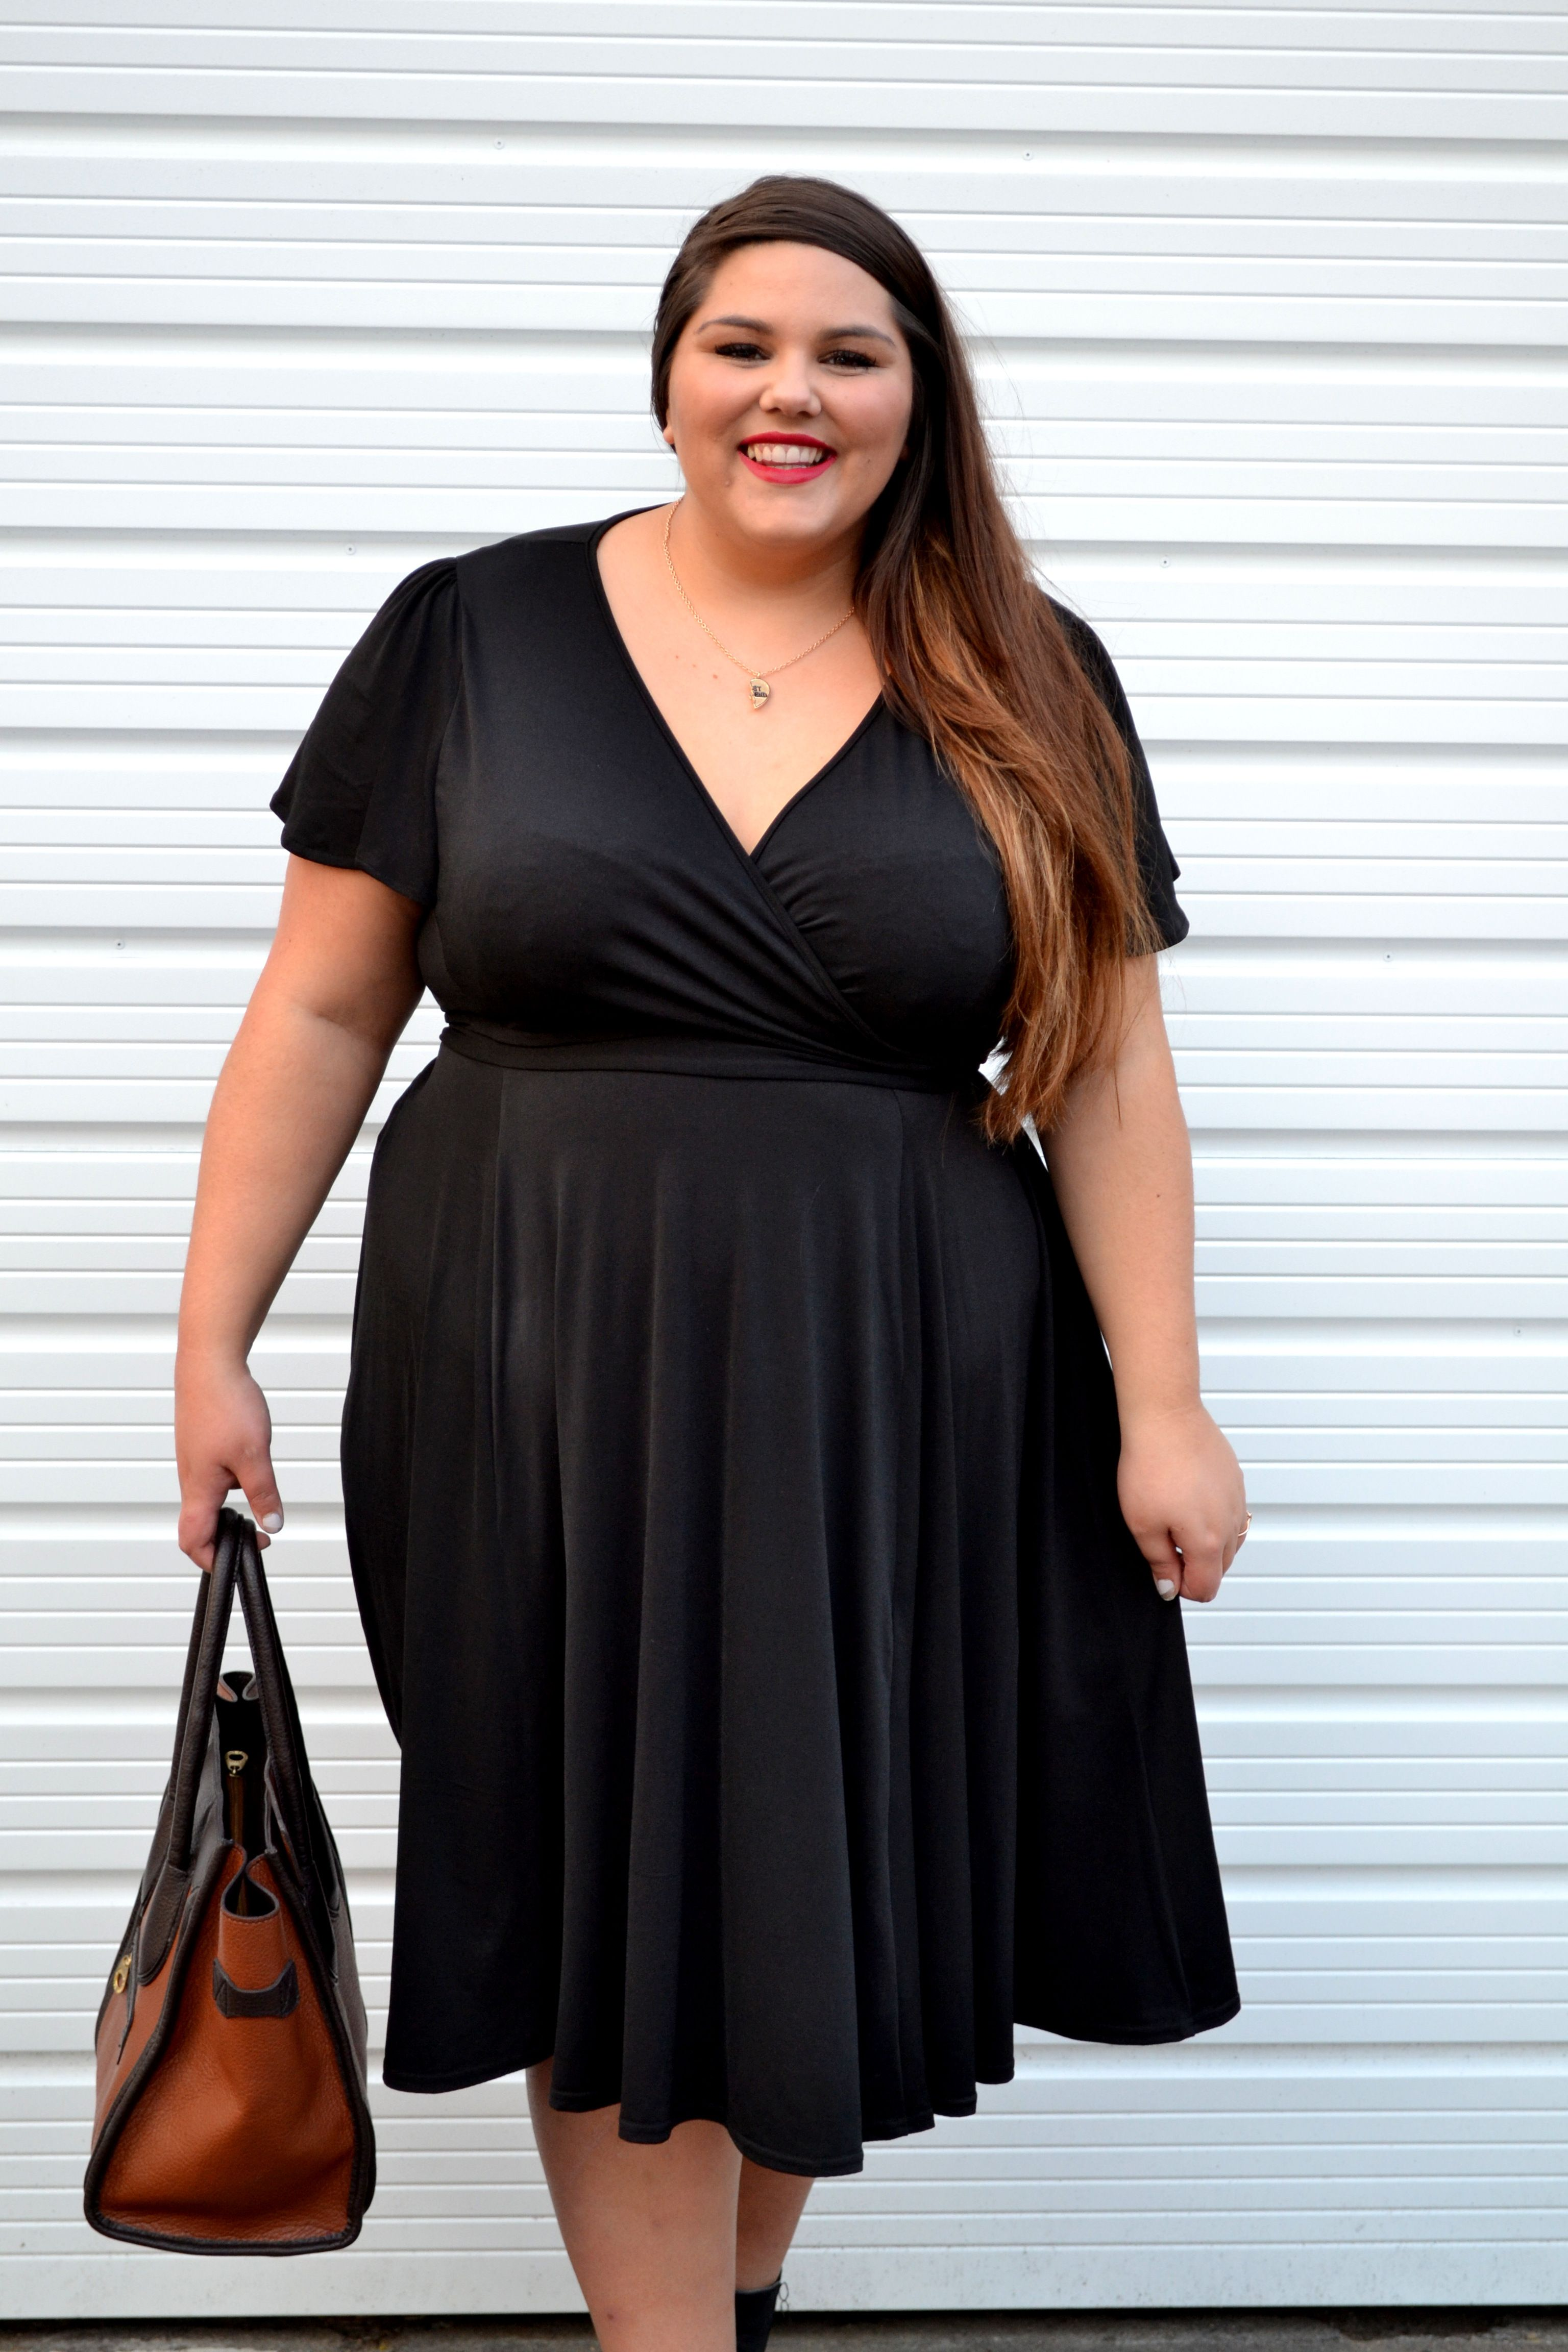 plus size fashion to create the perfect overall style with